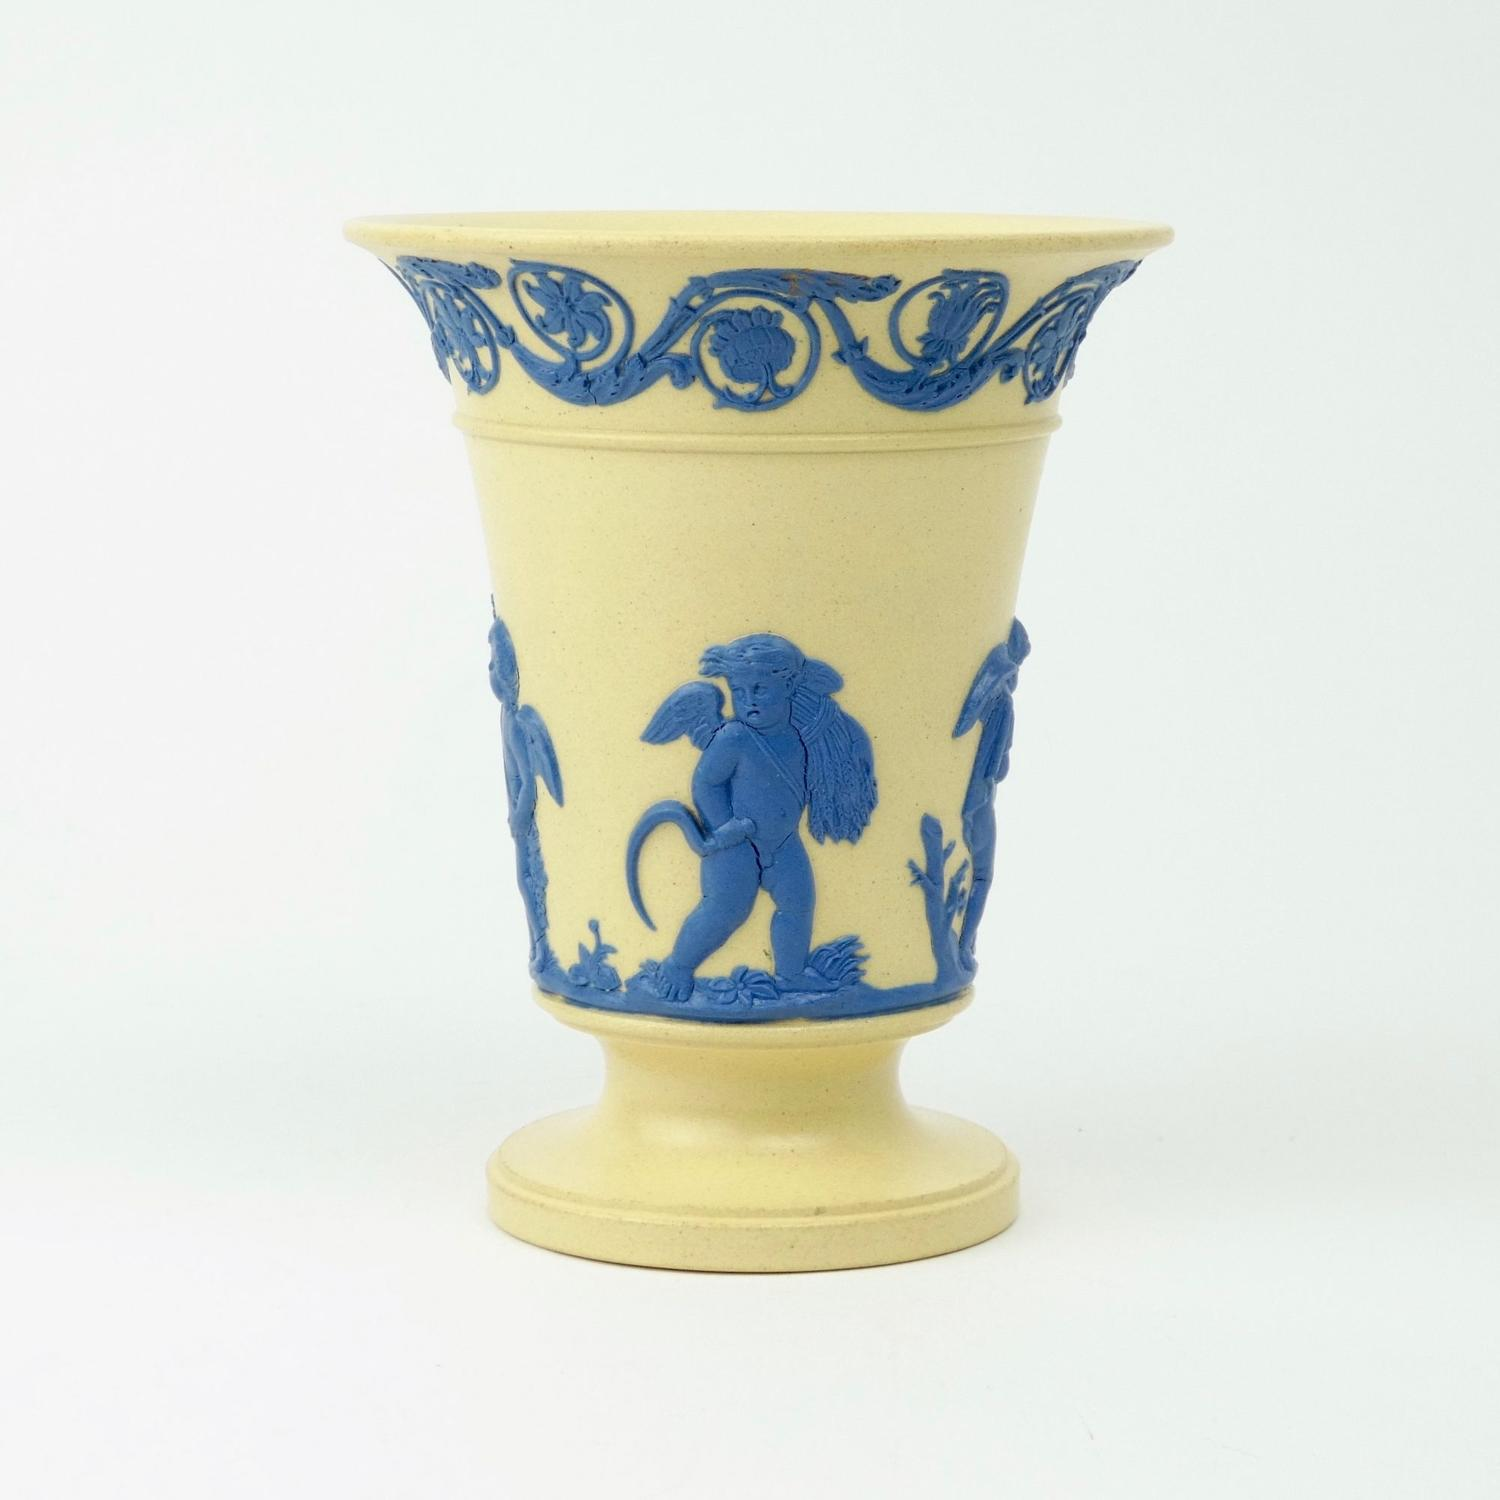 Caneware vase with blue relief